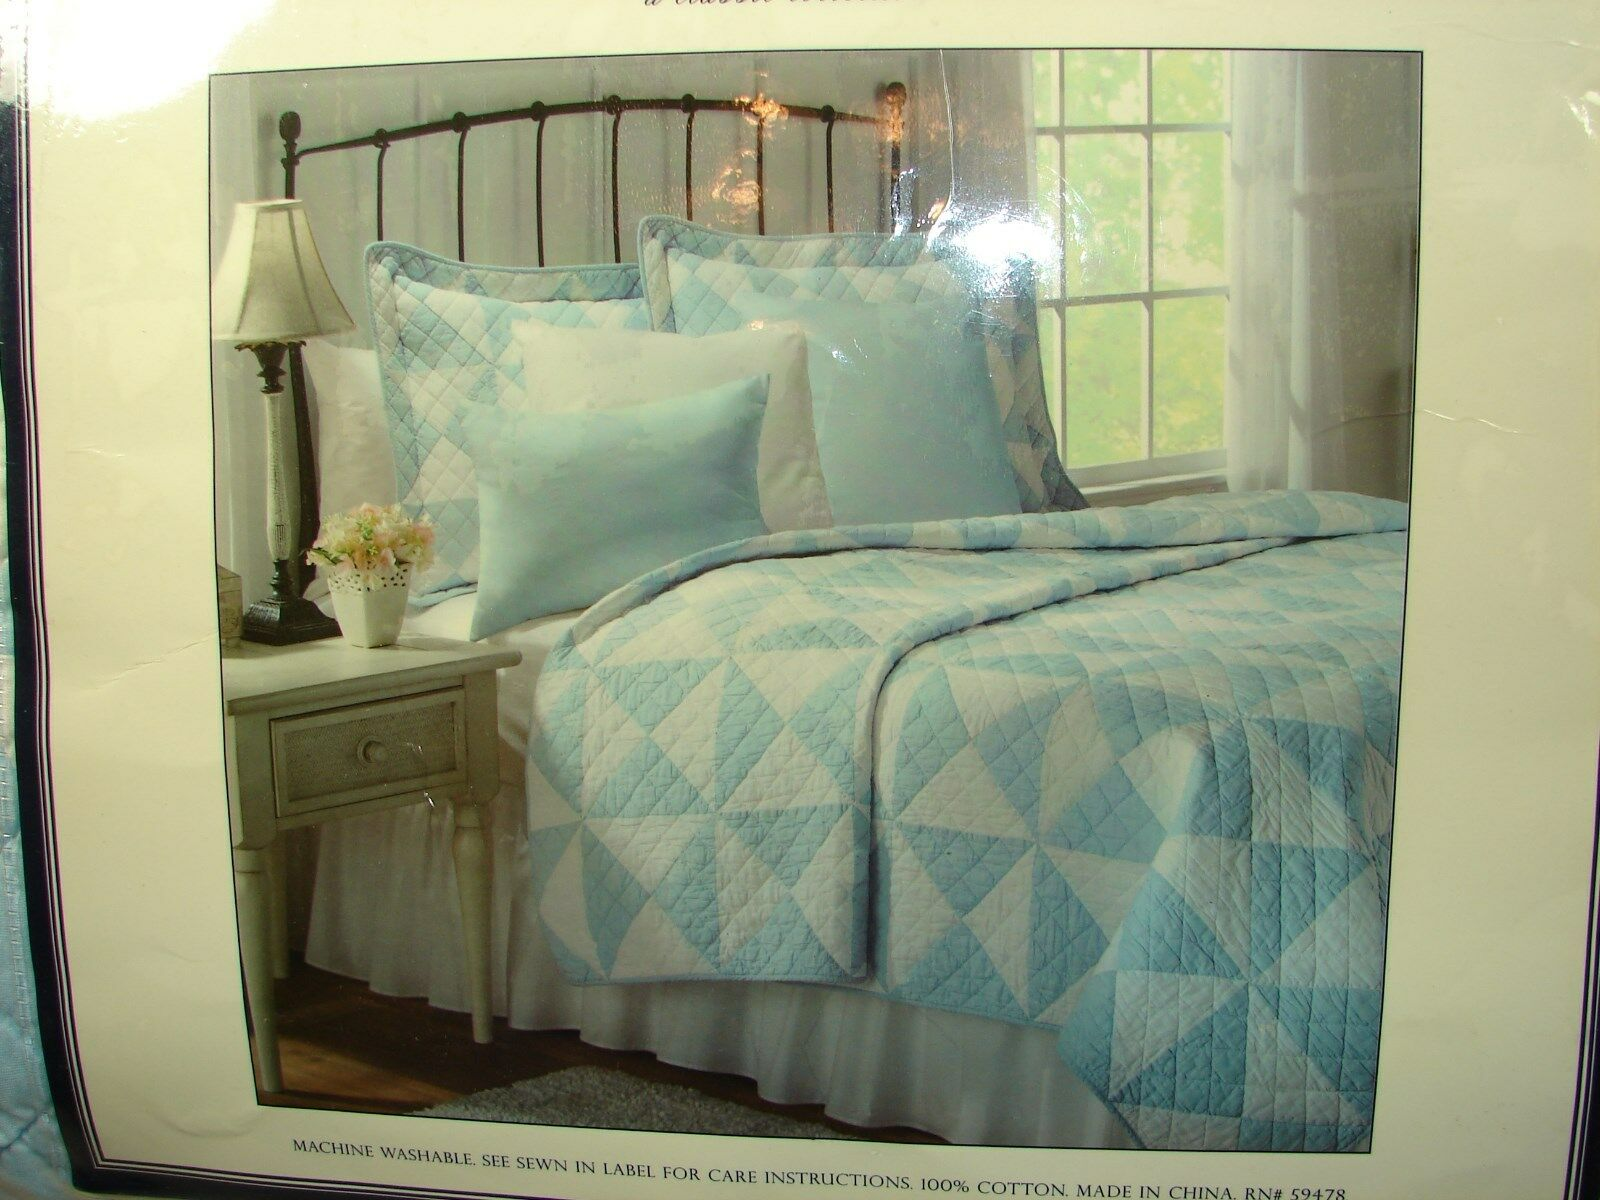 Earl & Wilson Light bluee & White Patchwork Quilt  King  New